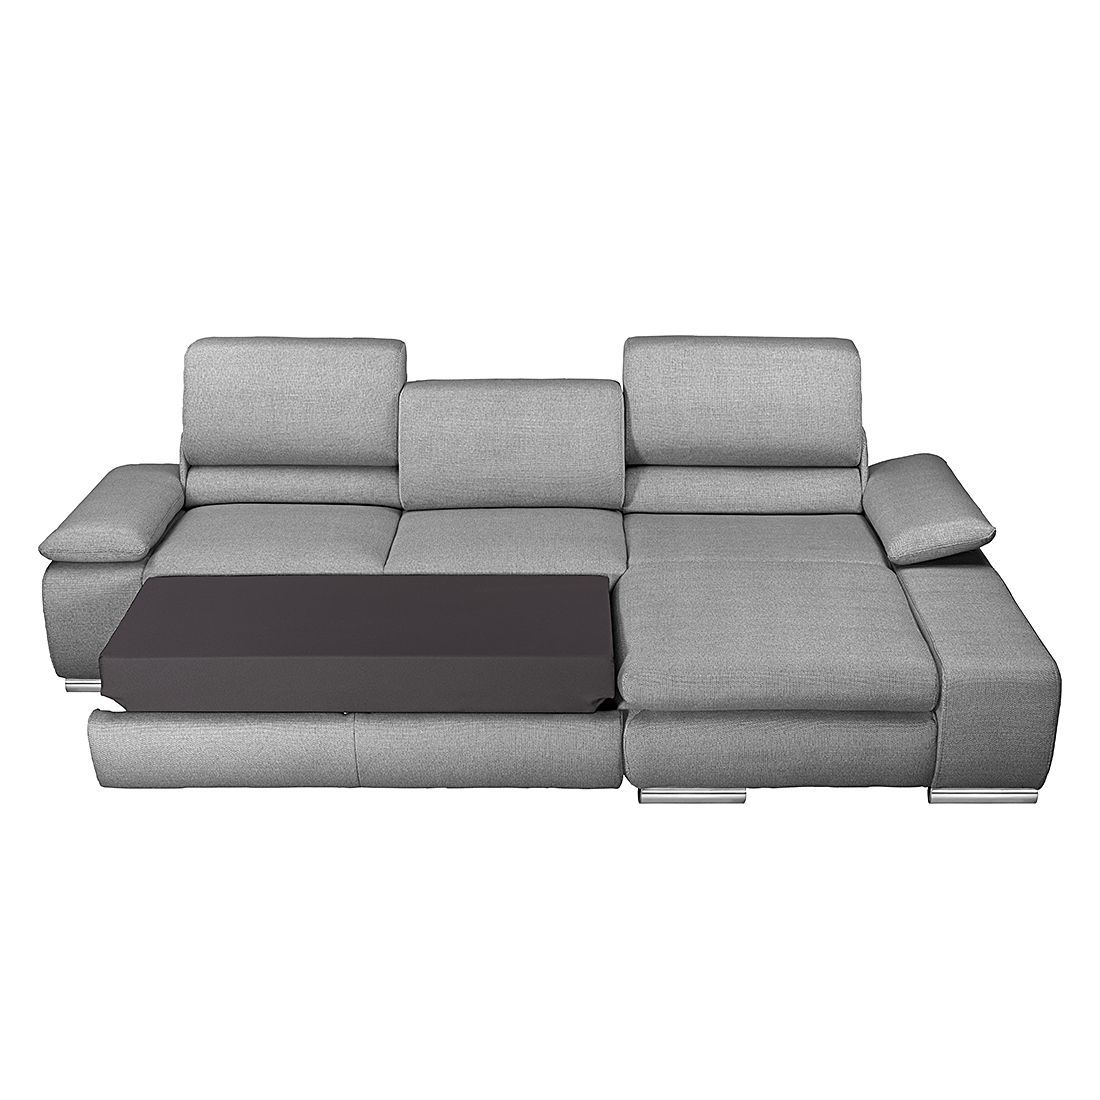 Ecksofa Masca Ii Strukturstoff Products Sofa Furniture Couch